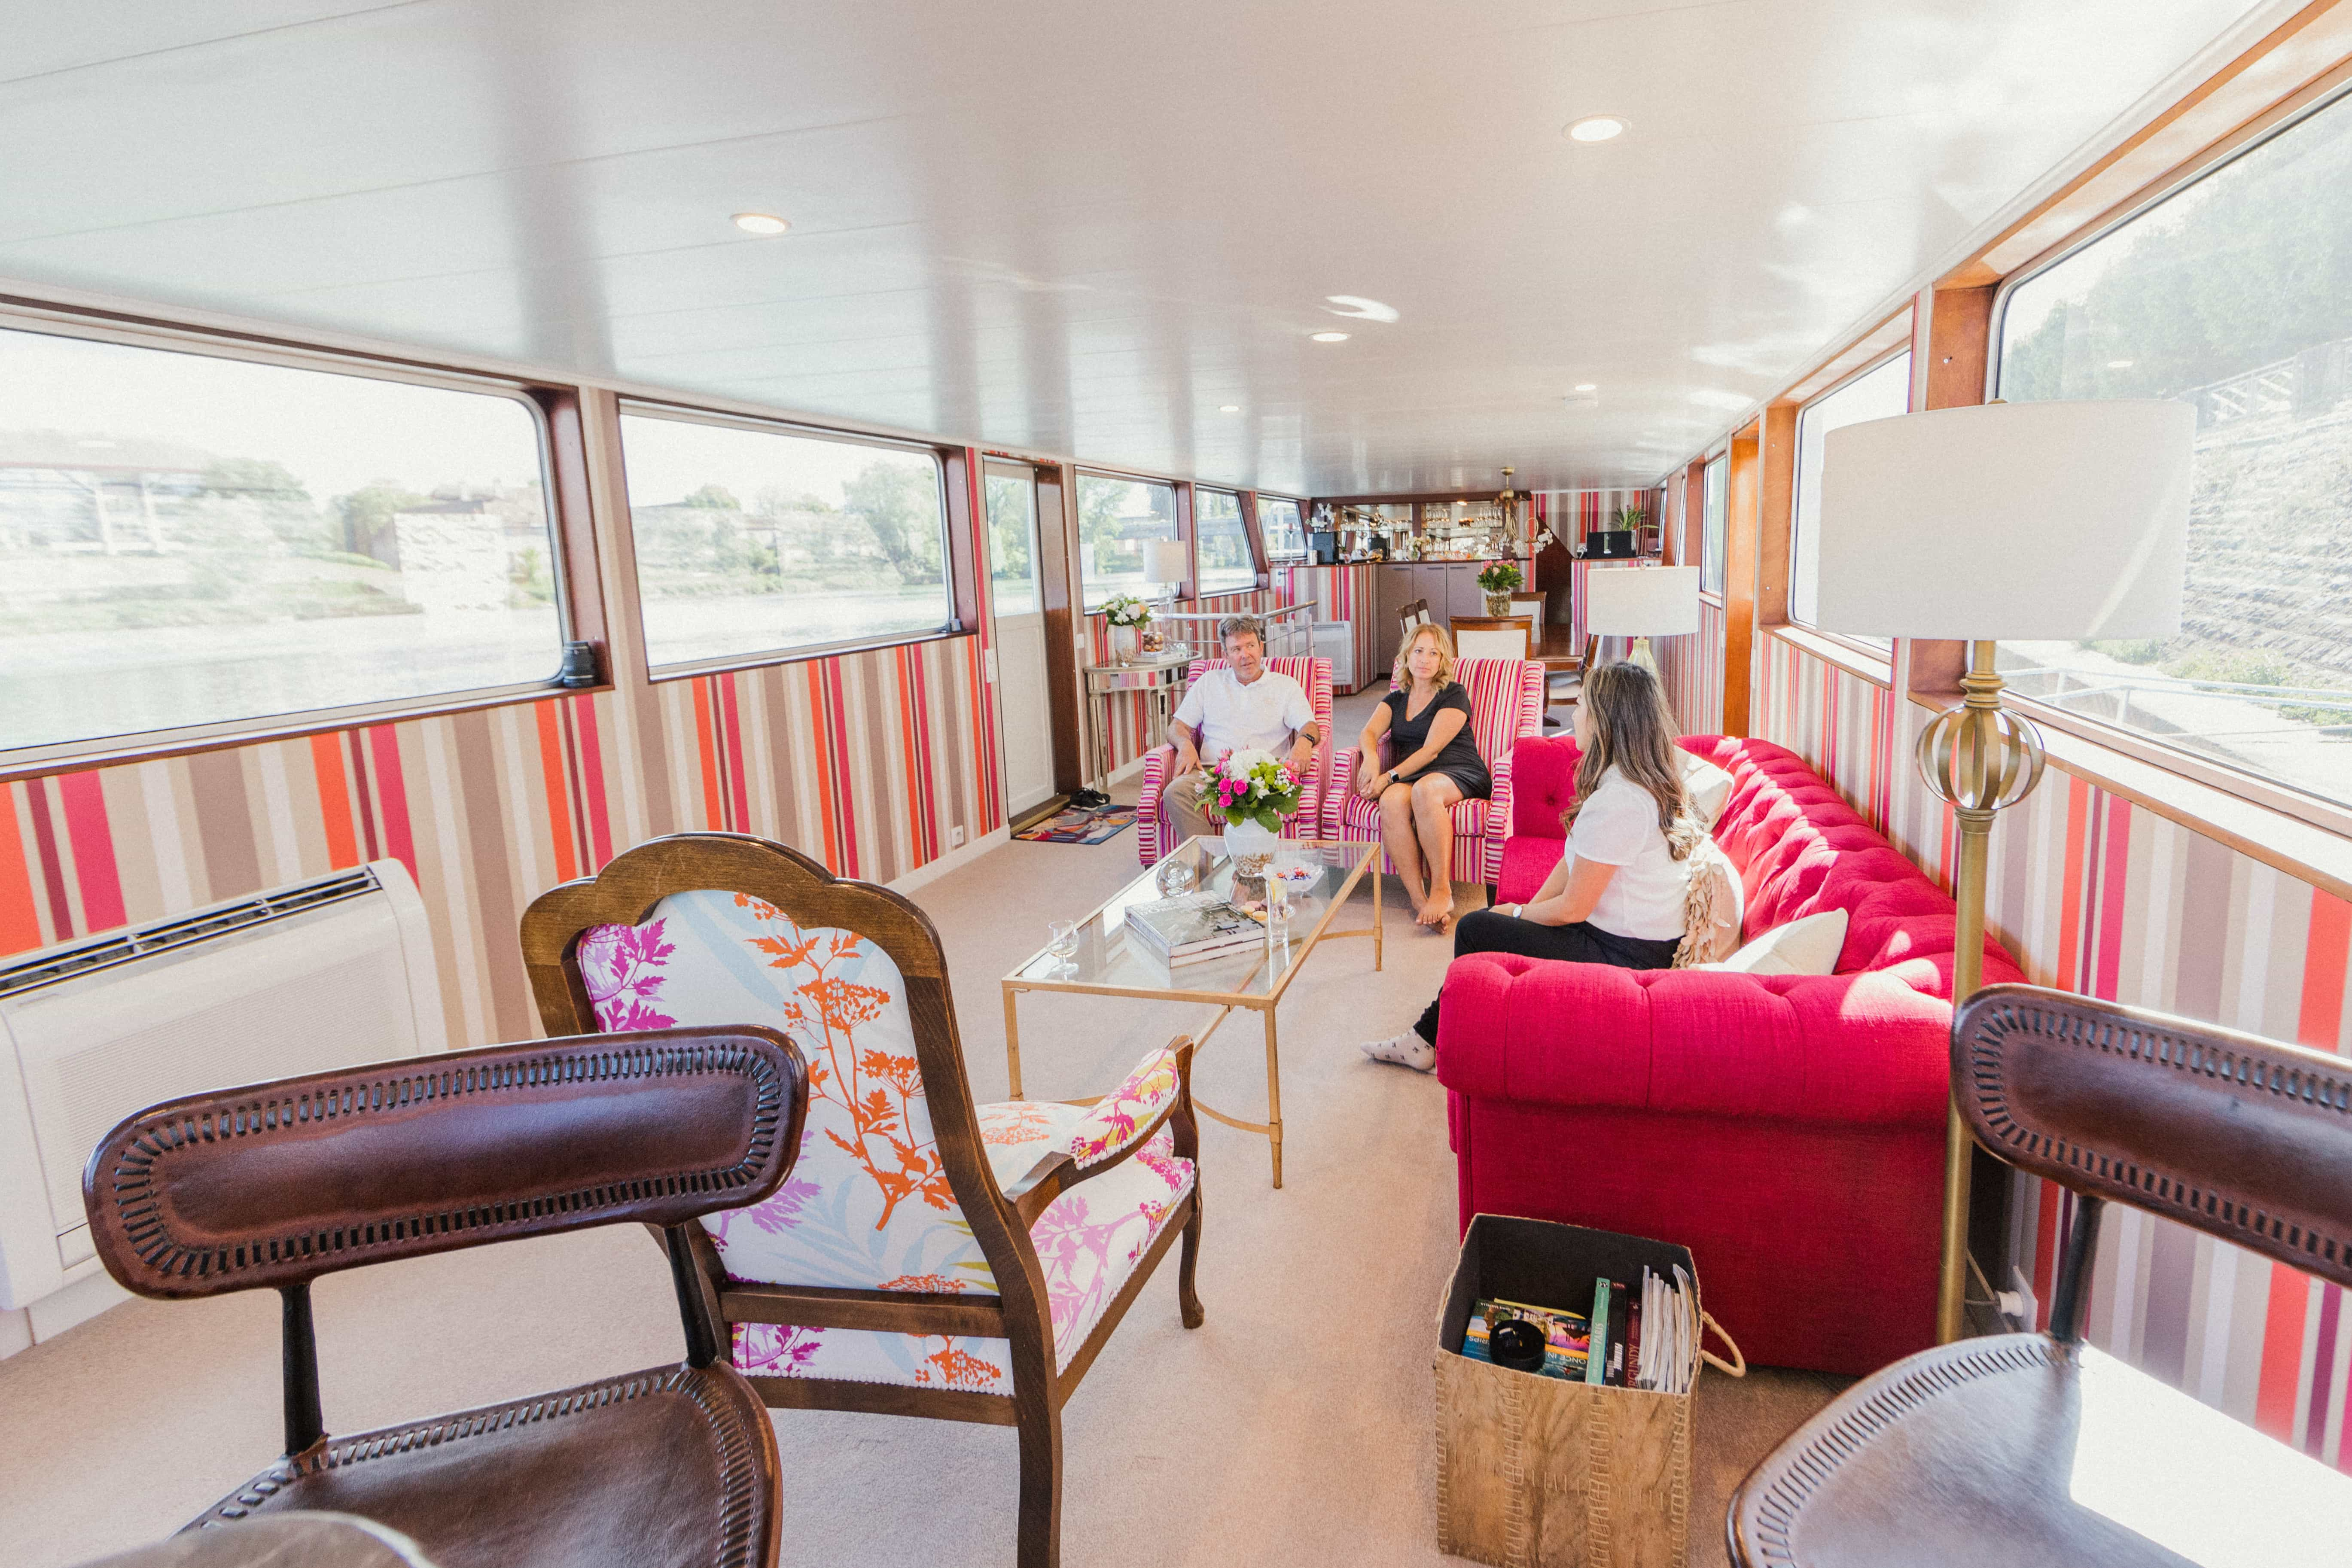 Sitting in the salon of a luxury barge cruise on the canals of France with owners of the Grand Victoria Cruises